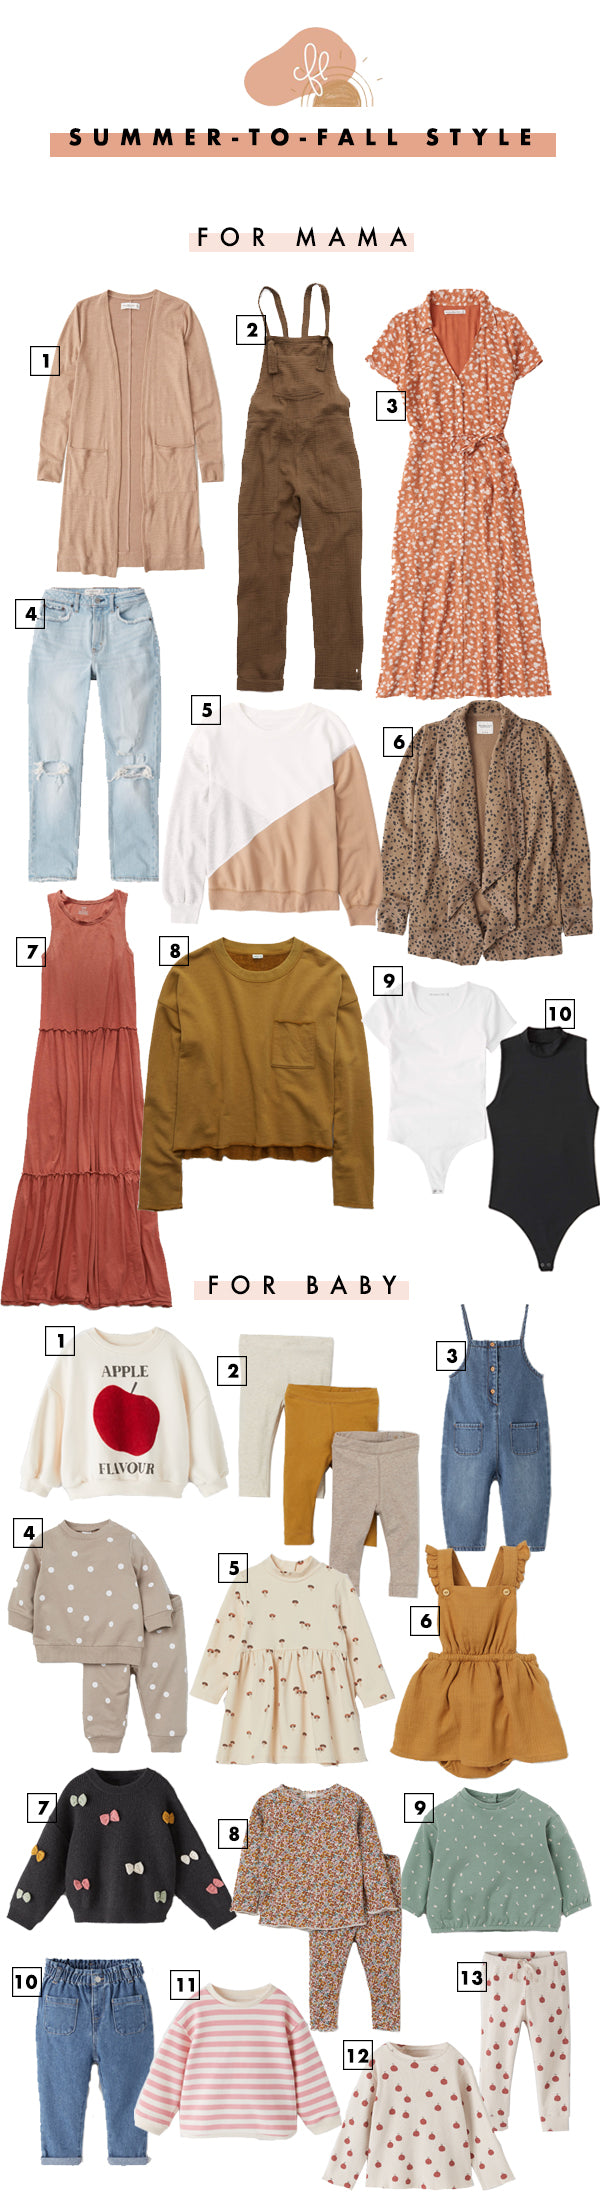 Mommy & Me Summer-To-Fall Style